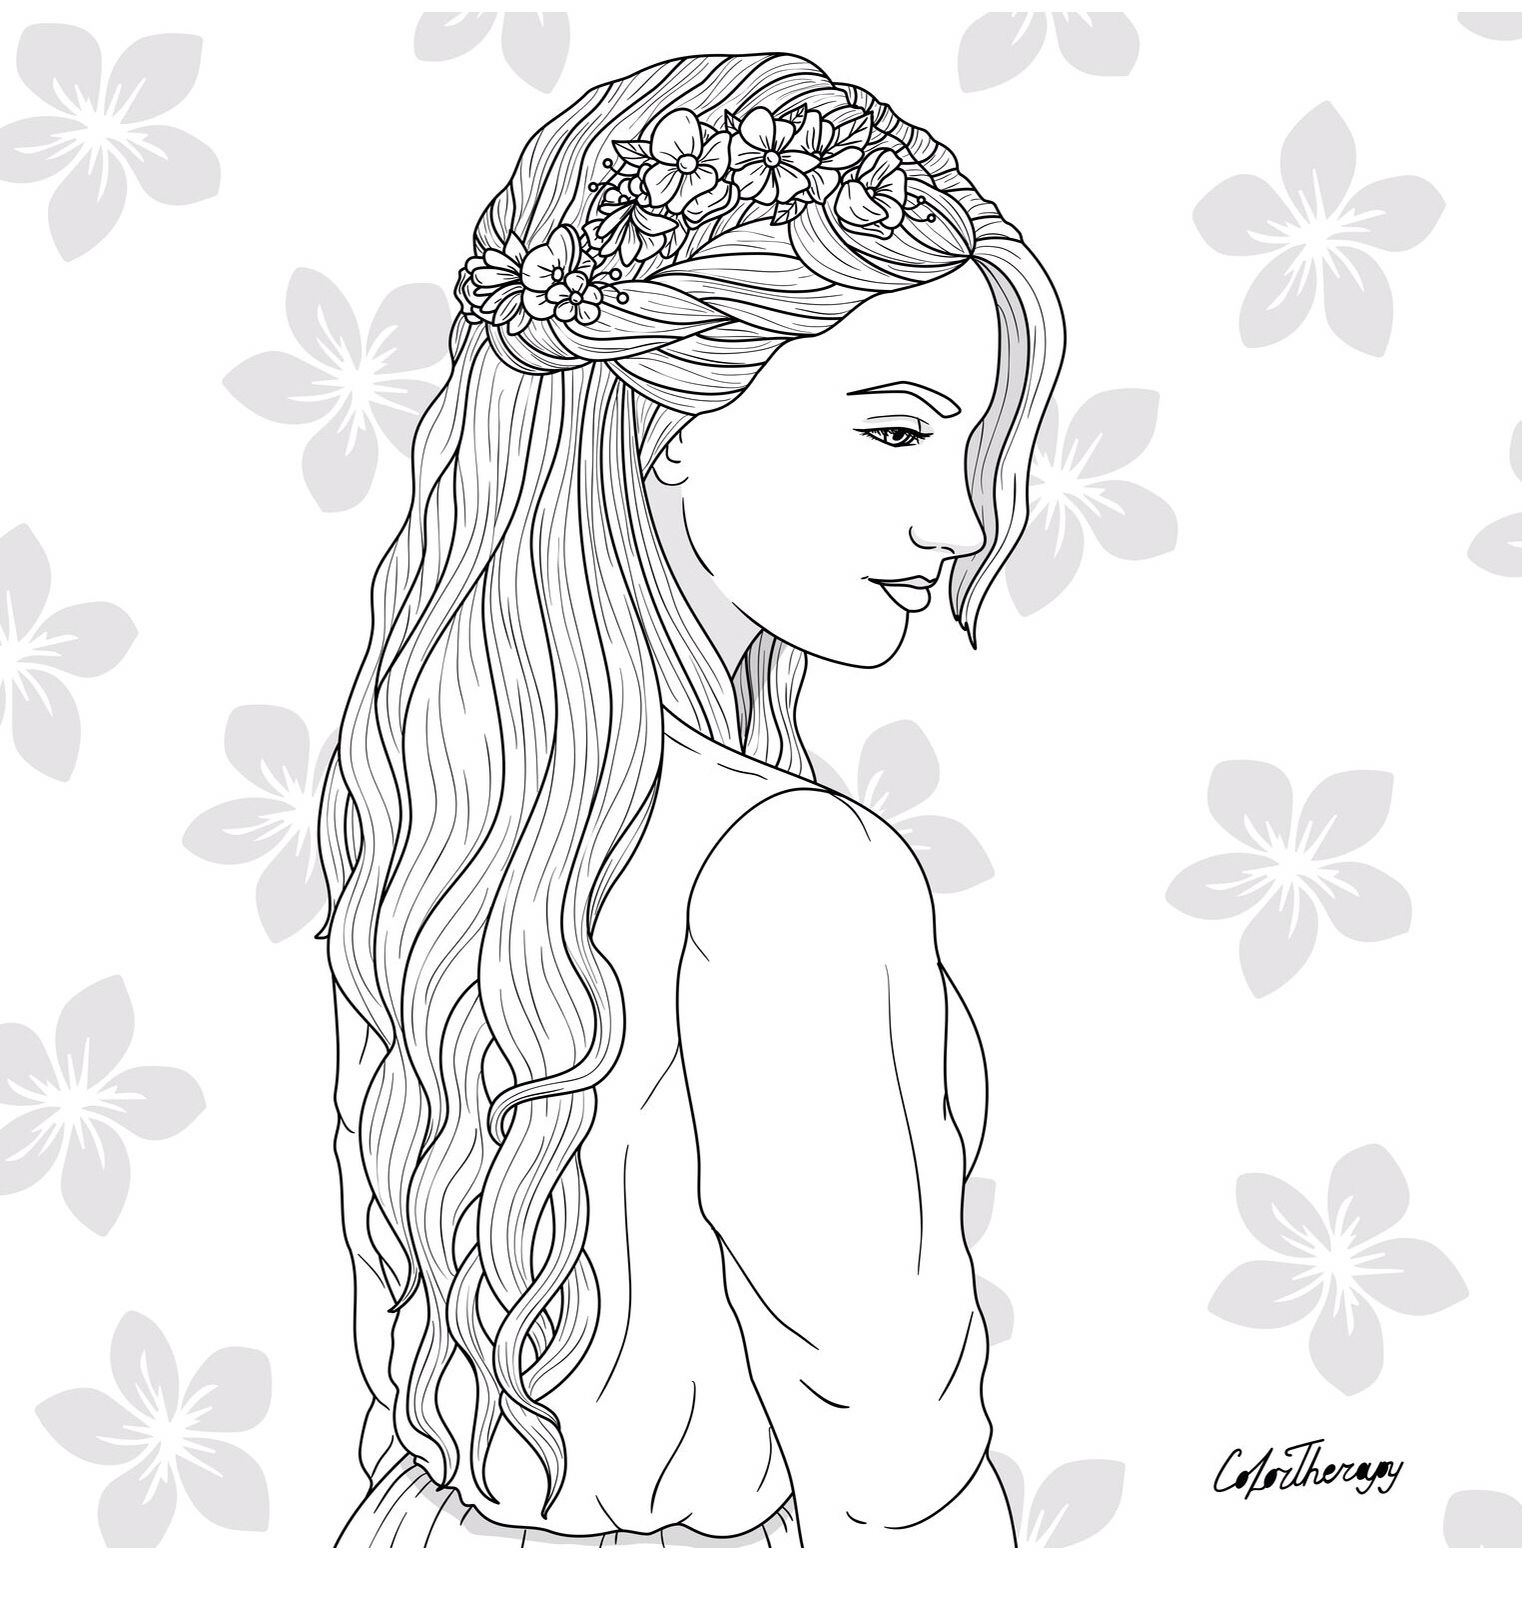 The Sneak Peek For The Next Gift Of The Day Tomorrow Do You Like This One Lady Cascade Braid Cool Coloring Pages People Coloring Pages Coloring Pages